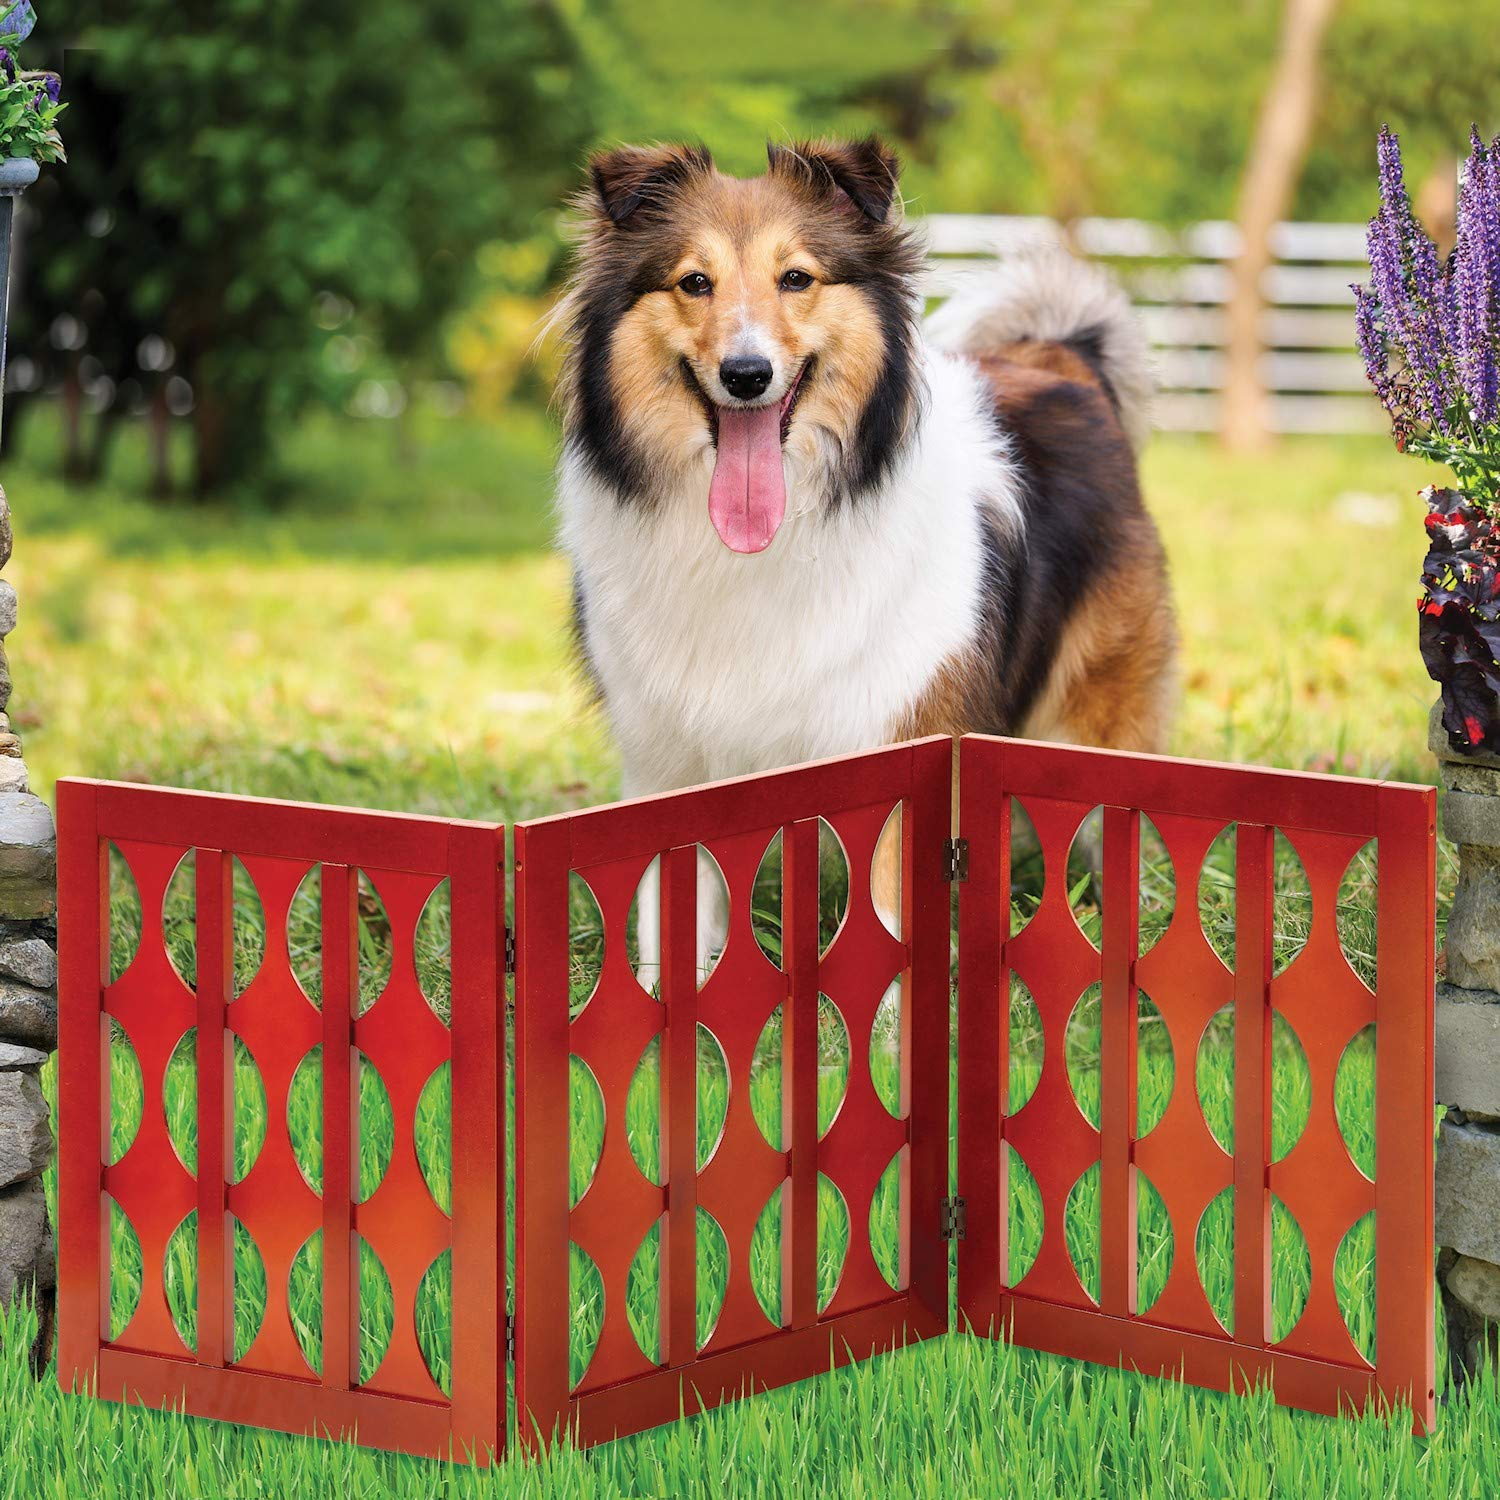 Safety Pet Gate for Dogs - Free-Standing & Foldable - Decorative Classic Wooden Fence Barrier - Stairs & Doorways by Etna Products